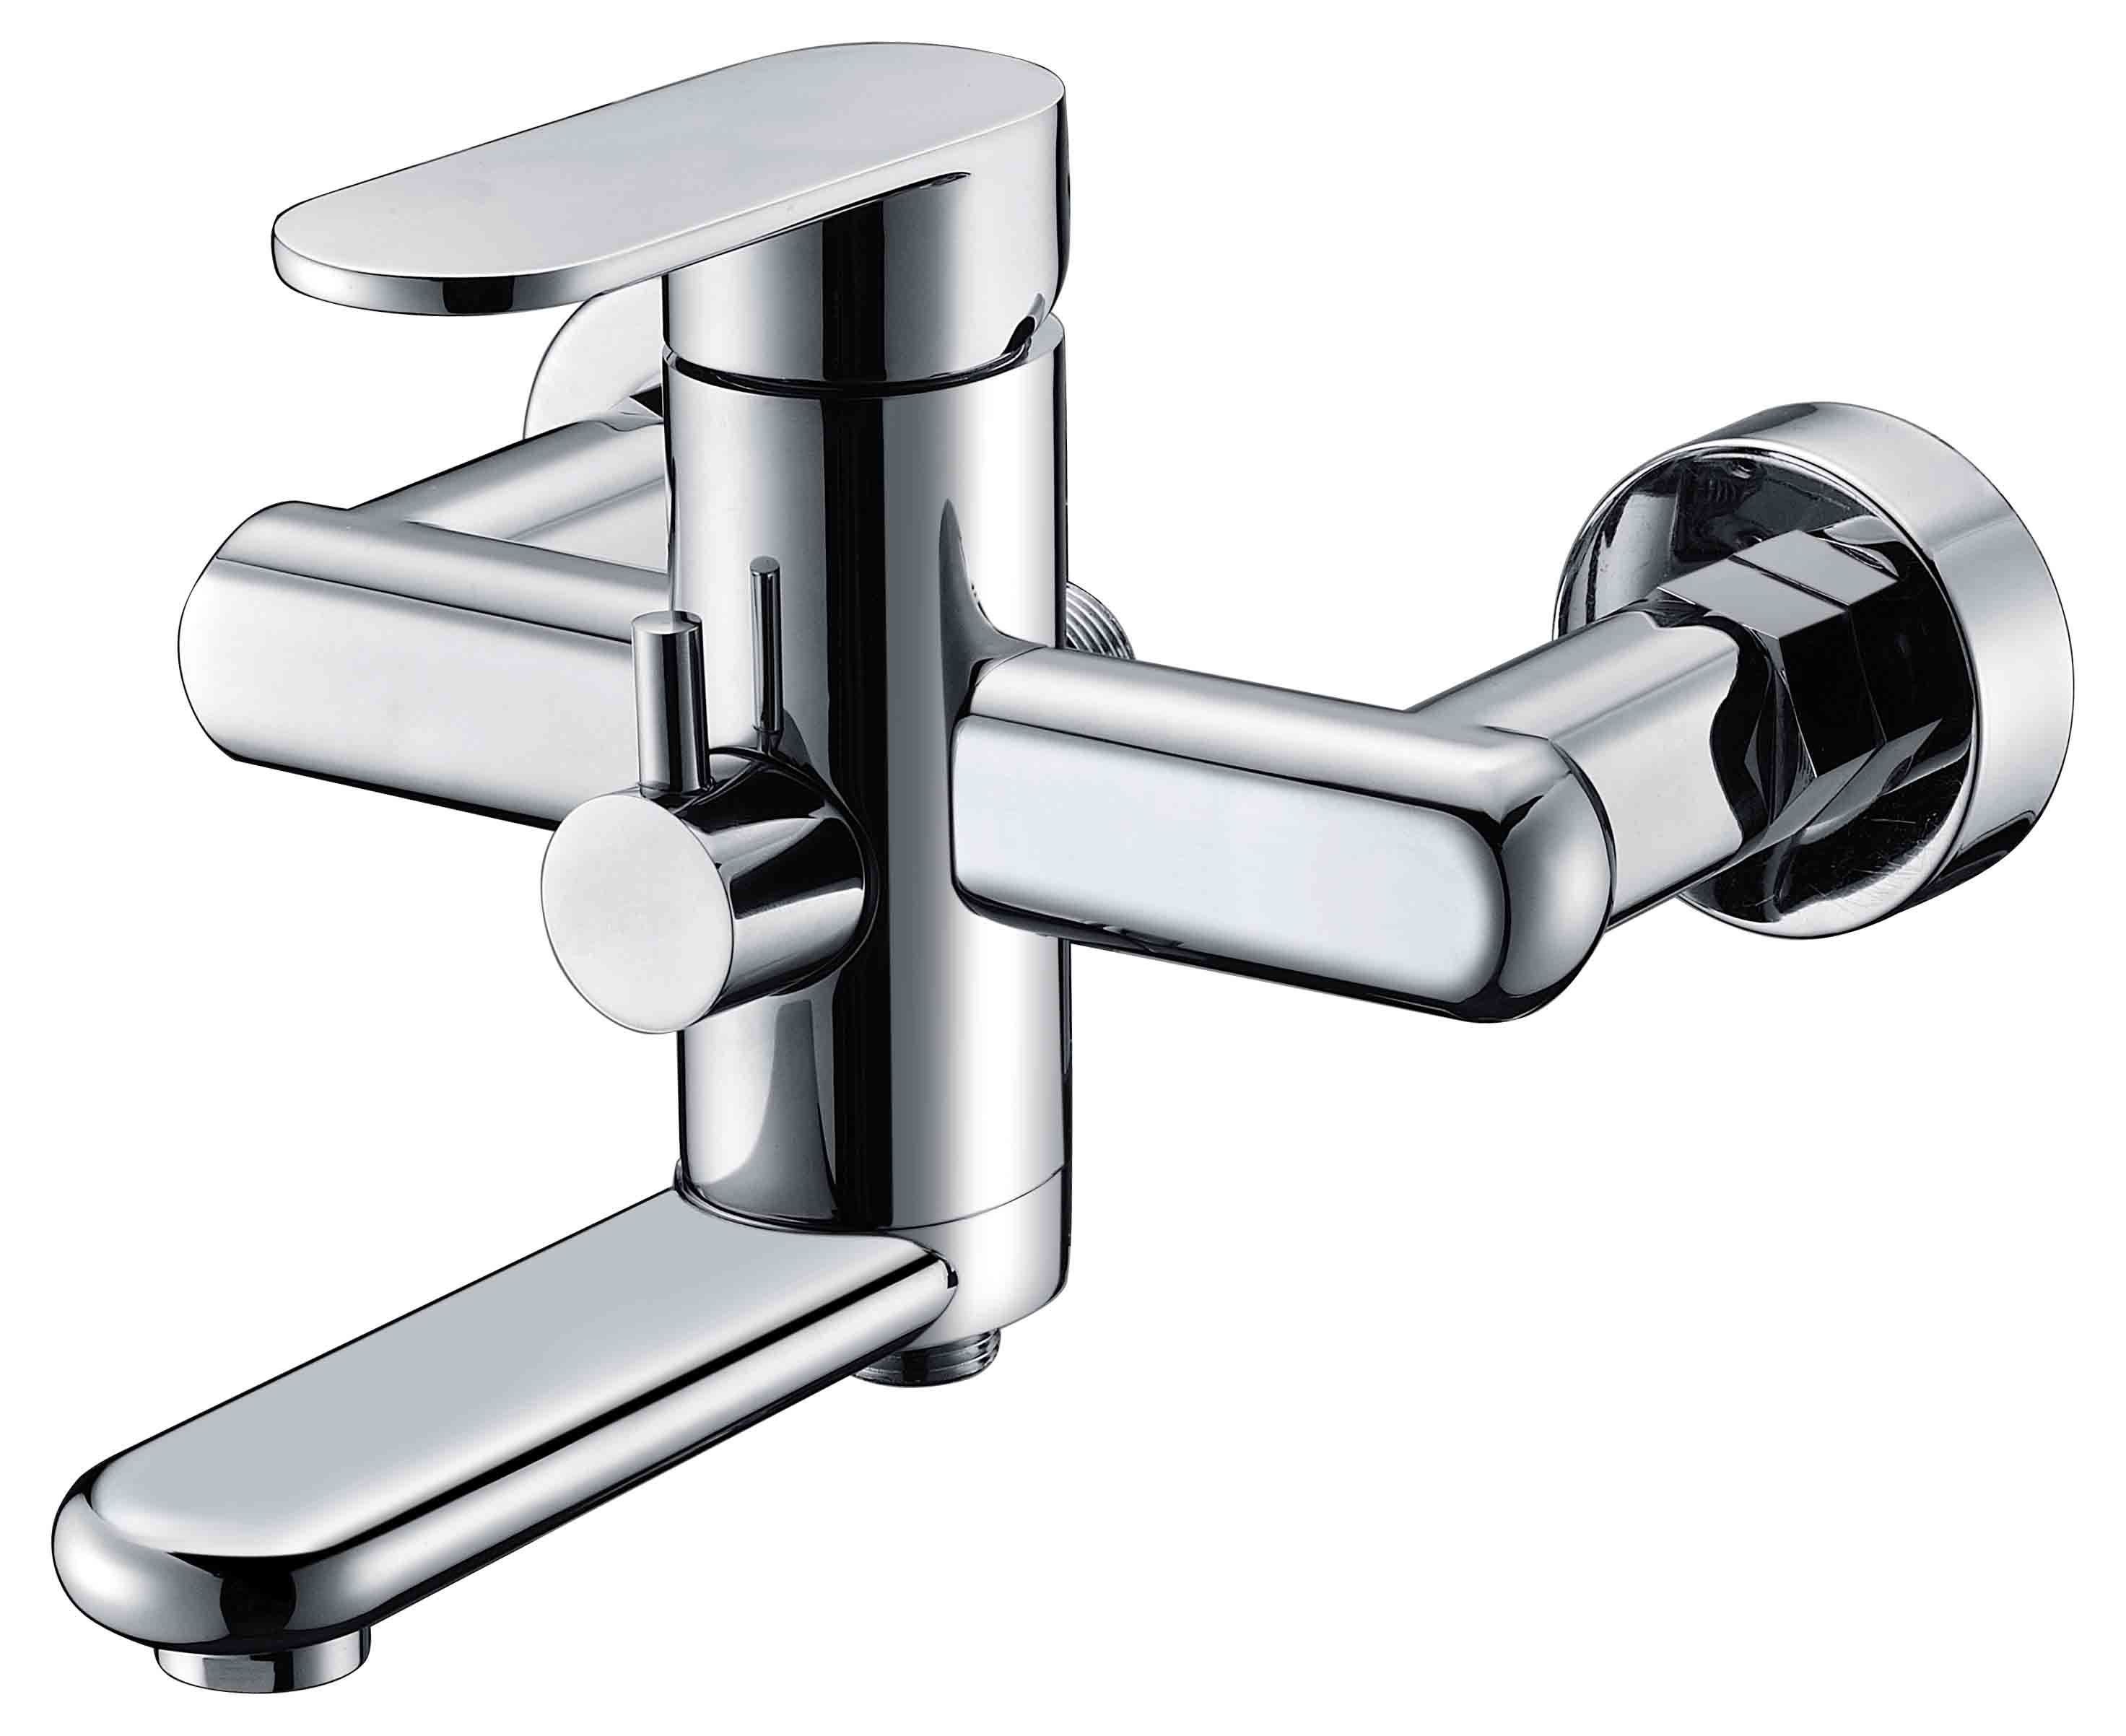 balanced trim the temp collection brushed posi with bathtub level moen pressure gpm head spout and nickel from shower tub faucet valve less